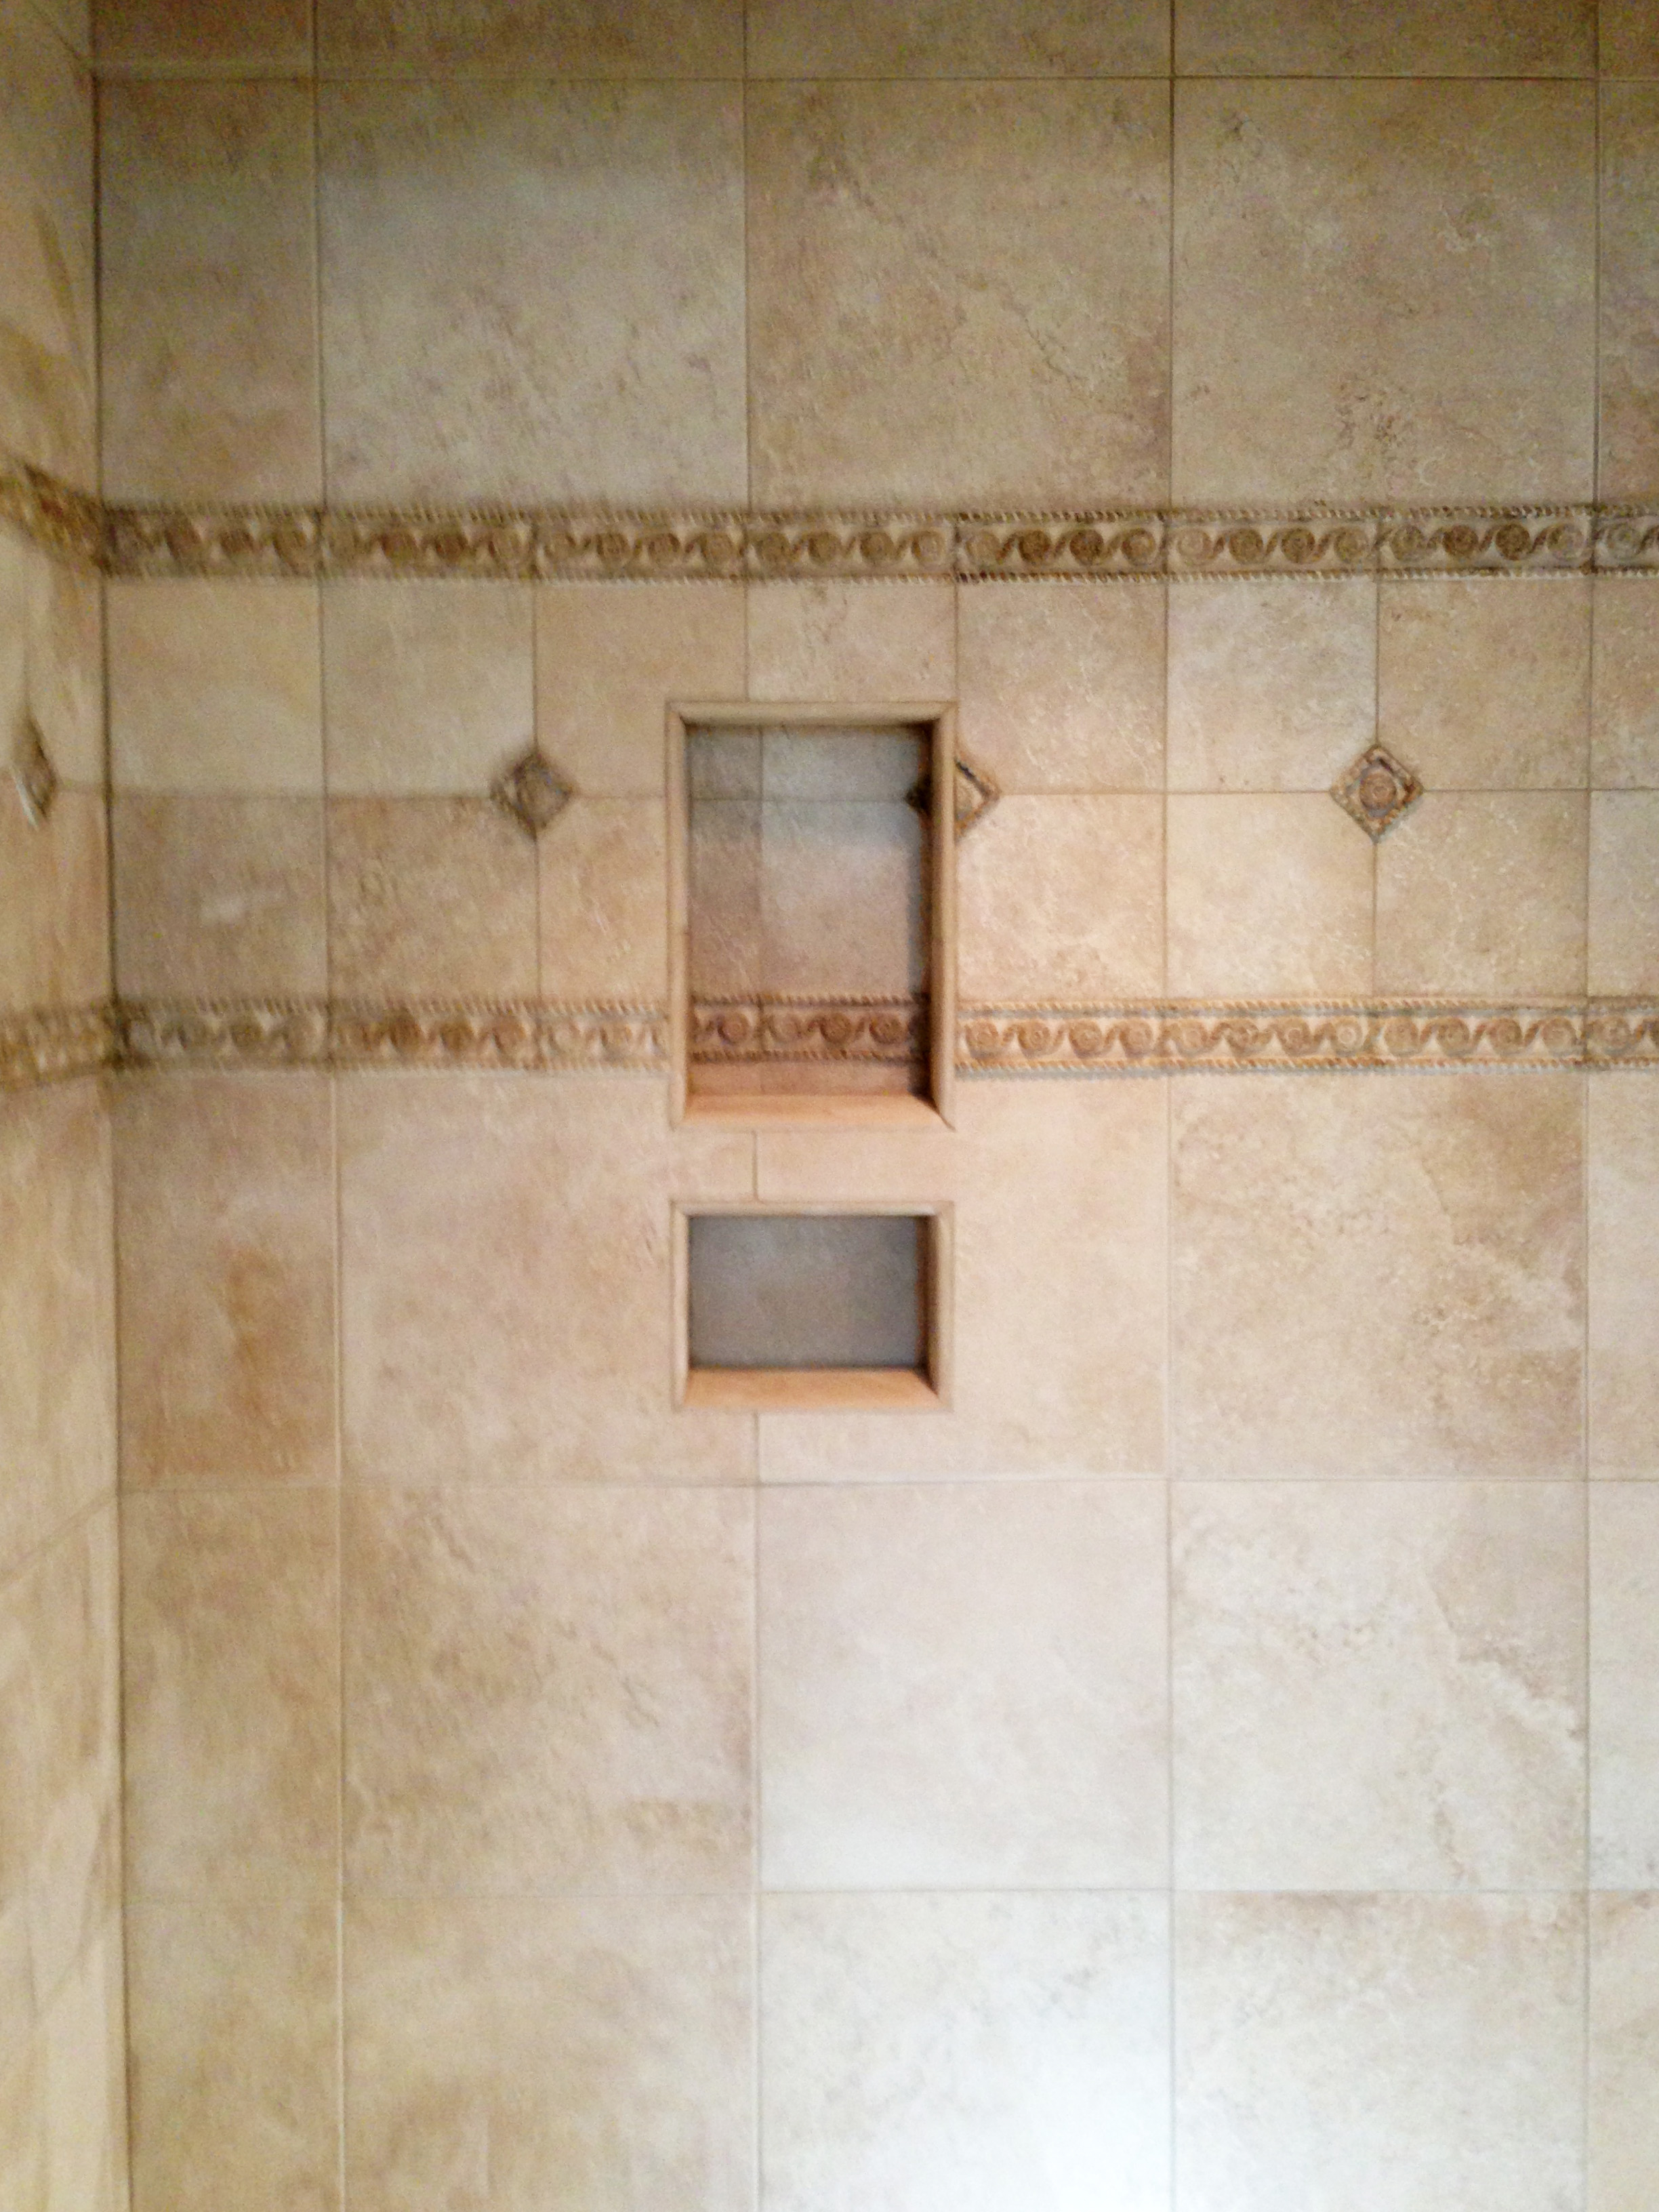 Shower Wall with Niche